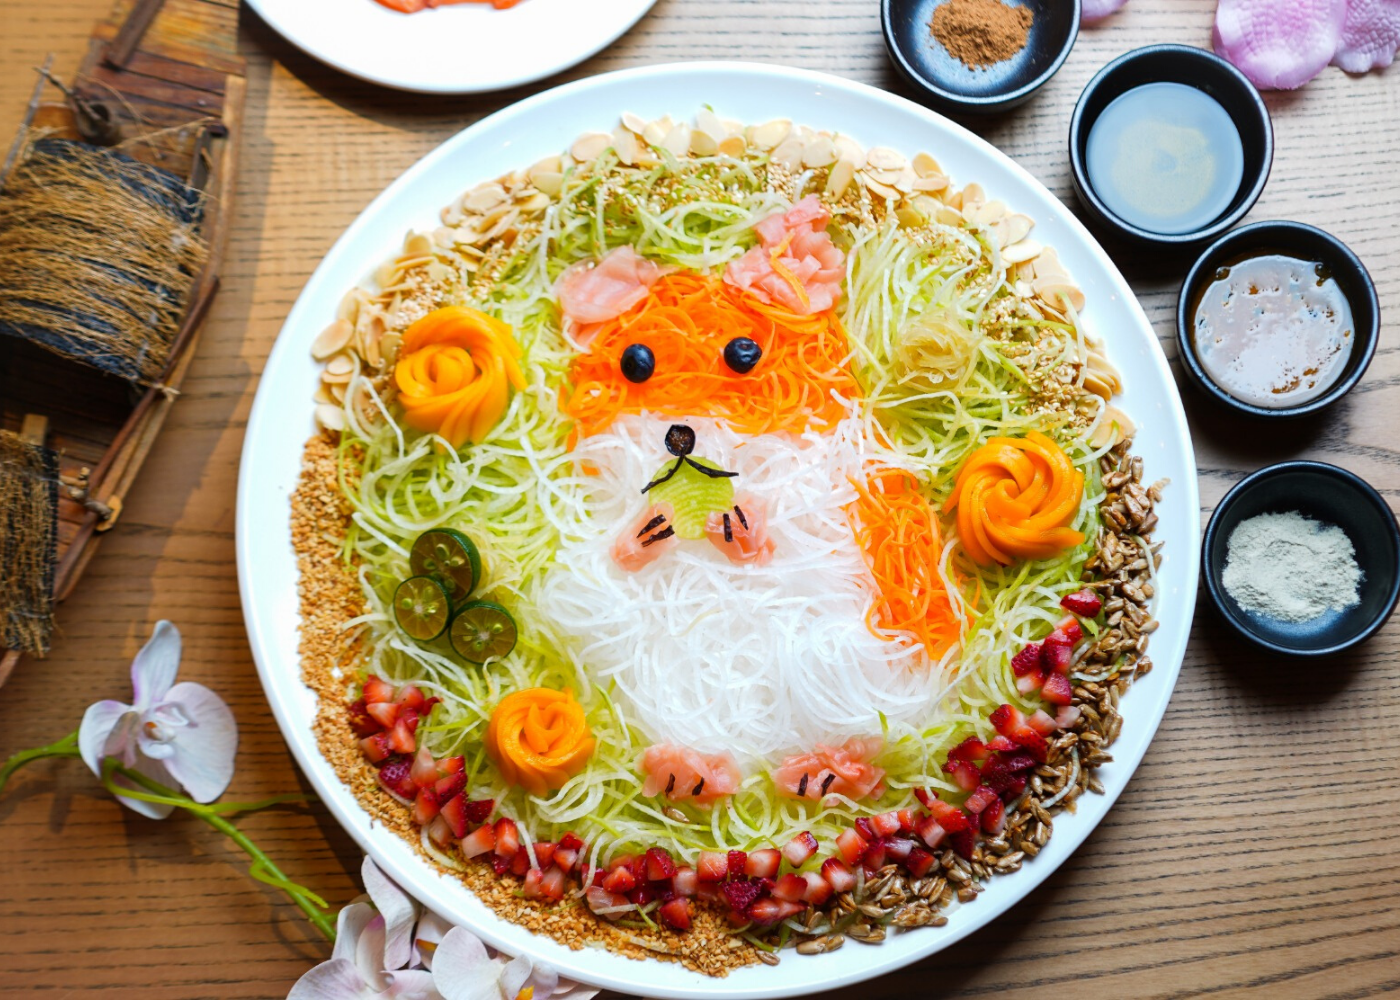 Unusual yusheng? You betcha! Try lo hei with alternatives like sakura ebi, Thai green papaya and unagi